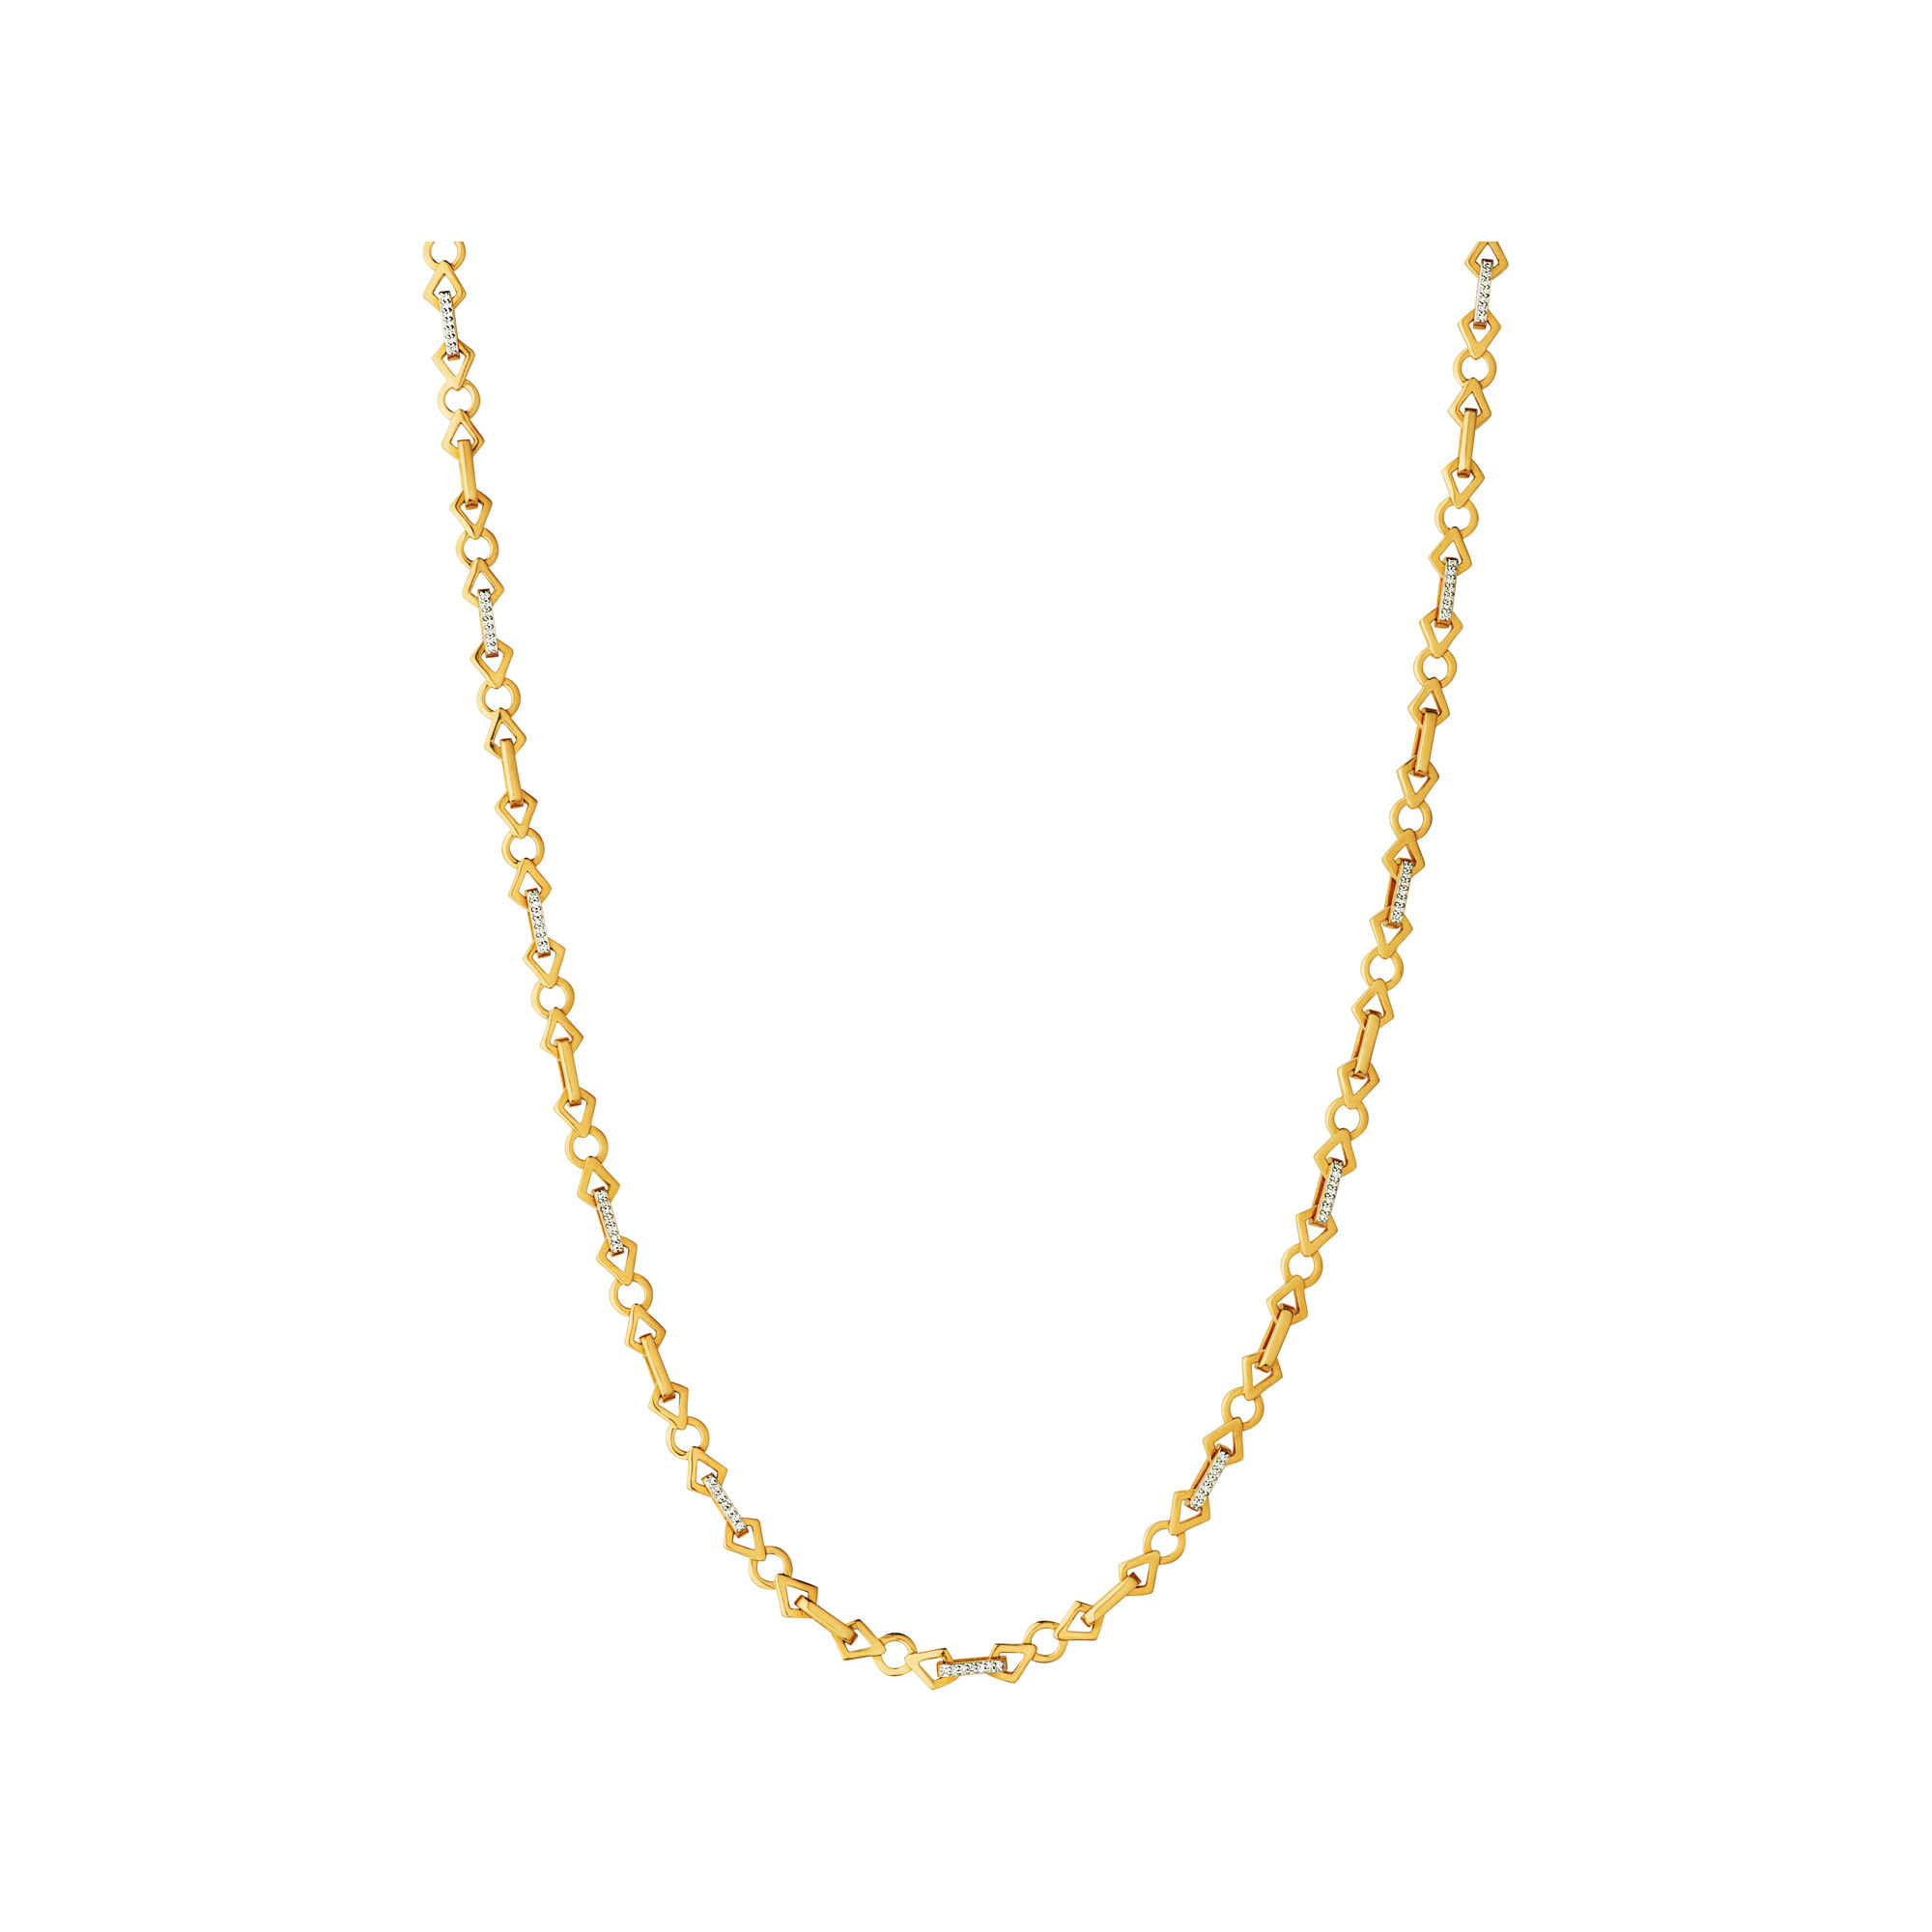 horn of plenty jewelry turchin products necklace dsc chain gold